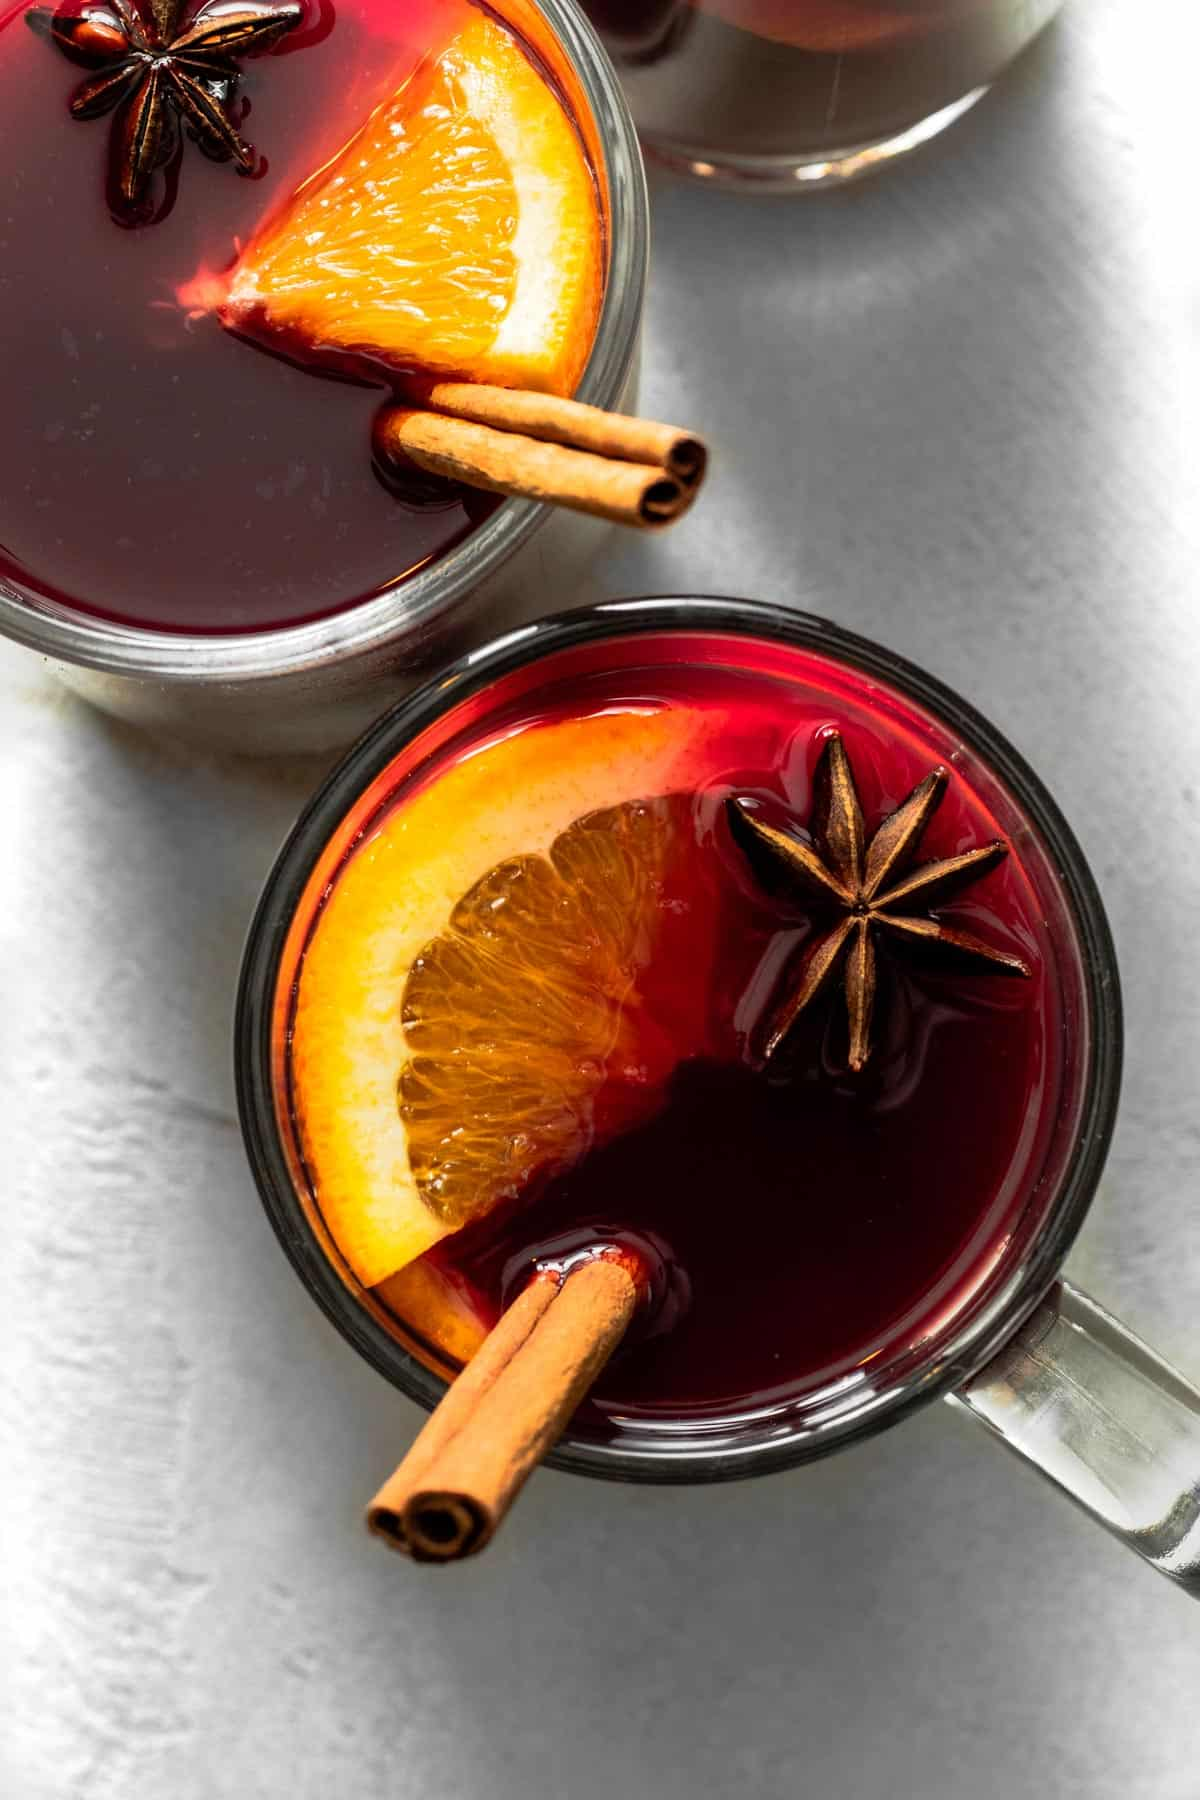 Non-alcoholic mulled wine in mug garnished with orange slice, star anise, and cinnamon.